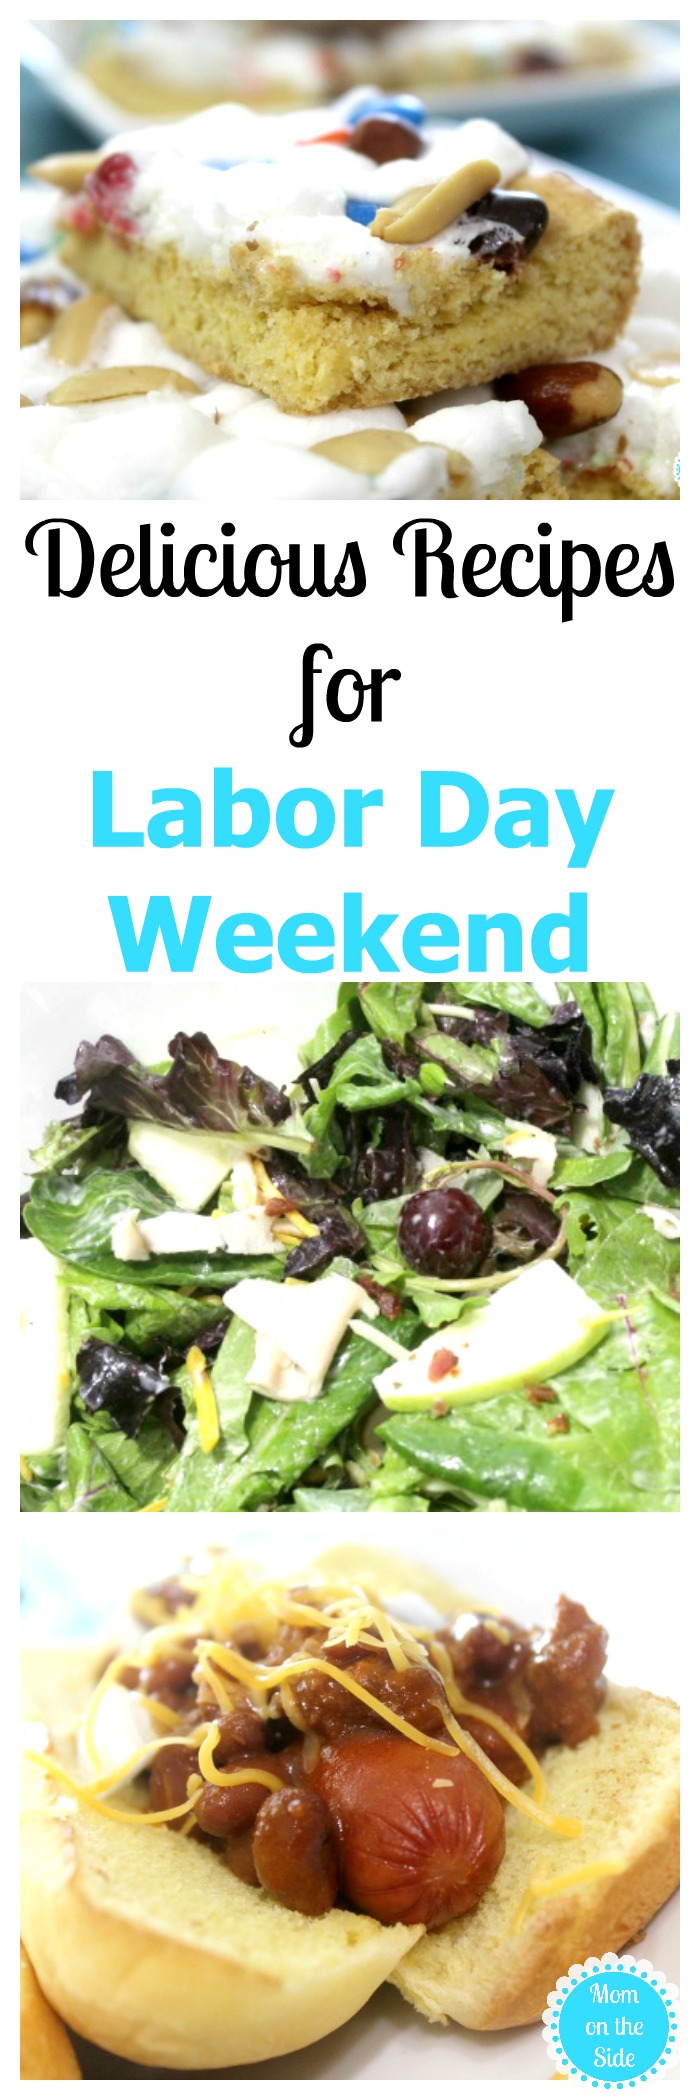 Delicious Labor Day Weekend Recipes